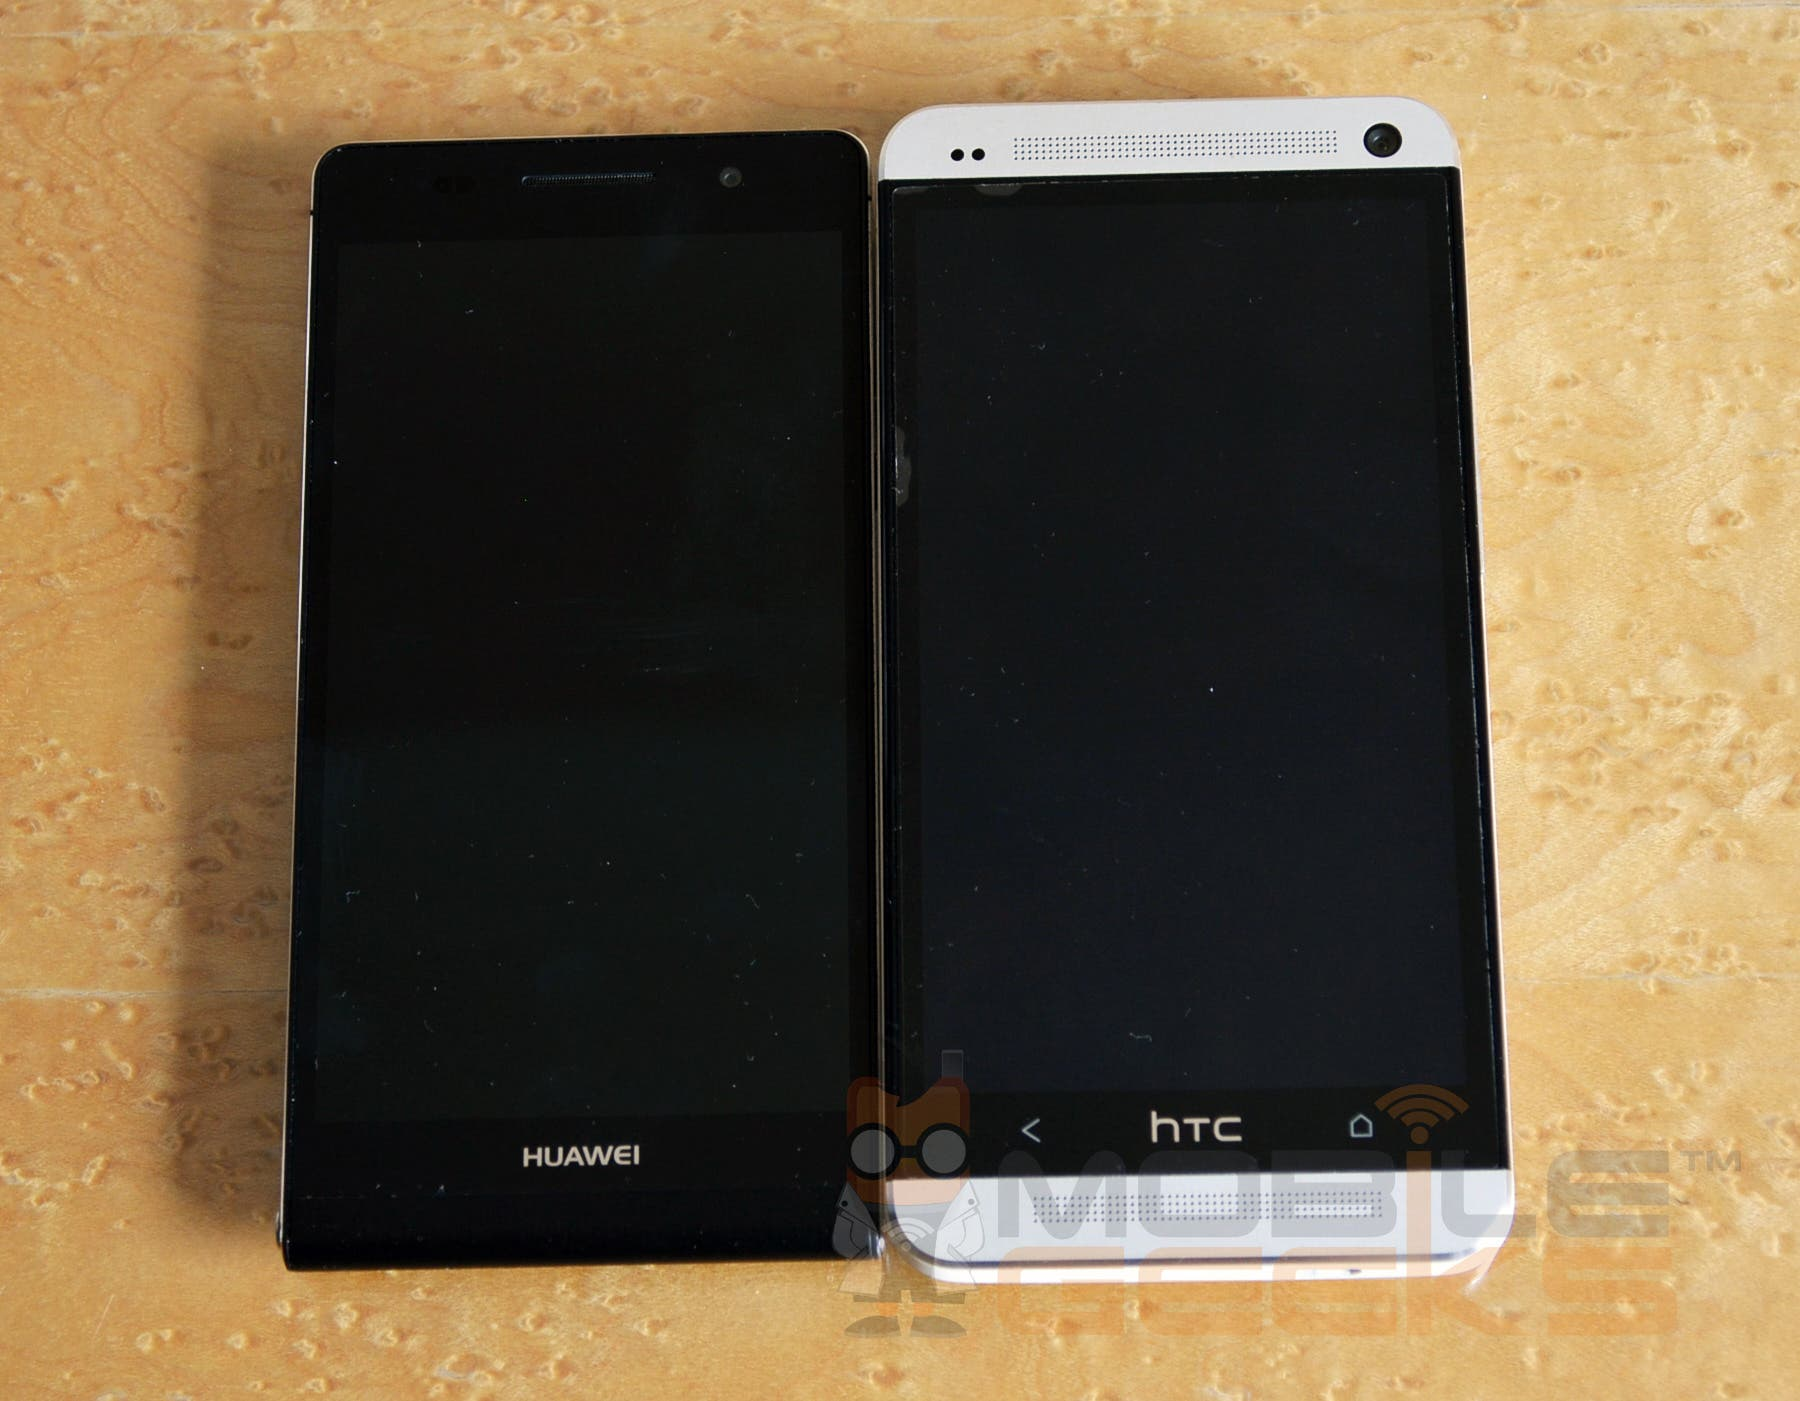 huawei-ascend-p6-21-vs-htc-one